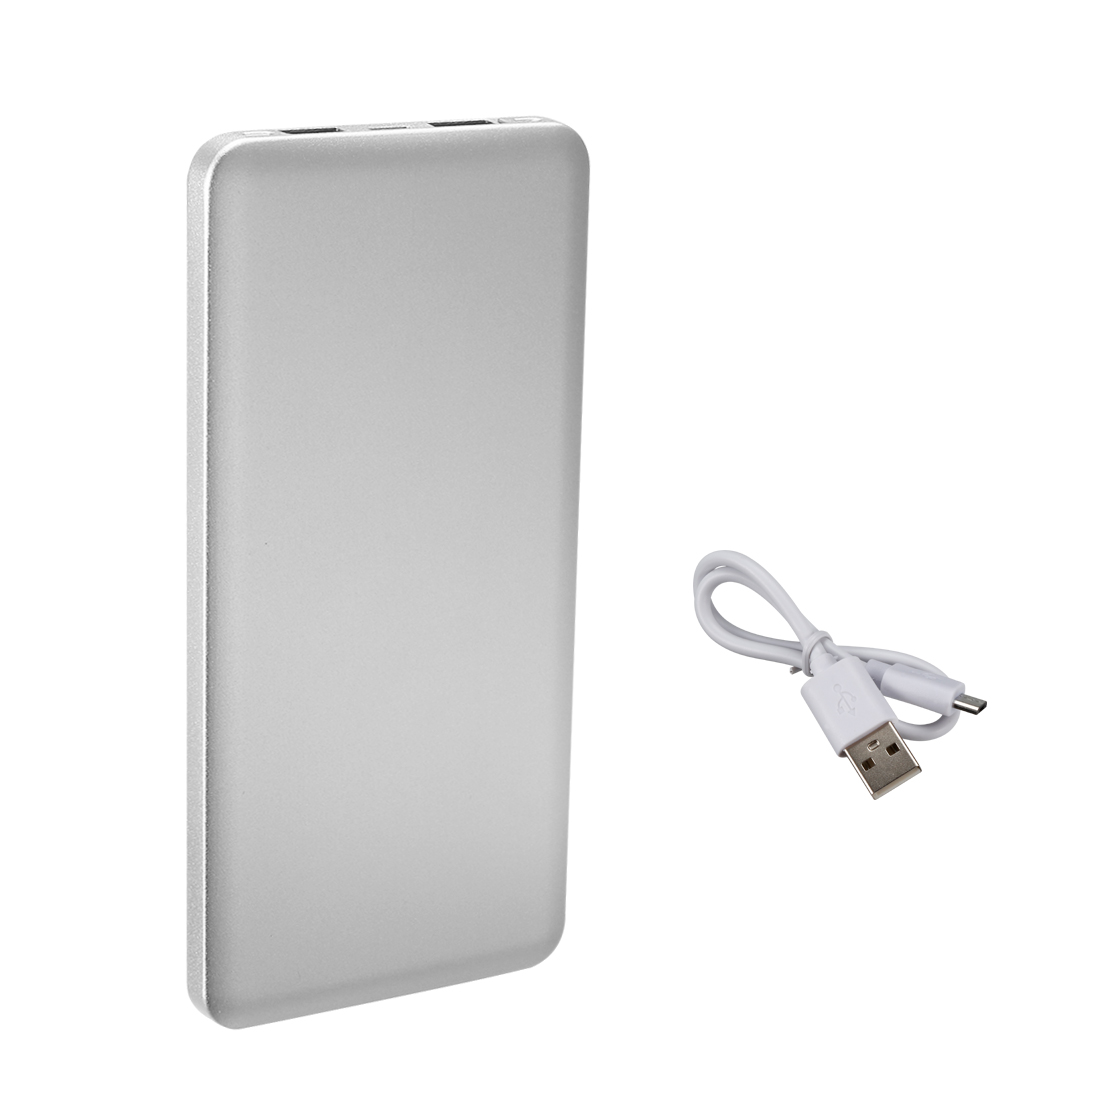 6000mAh Portable Charger Dual USB Power Bank Phone Battery Silver Tone